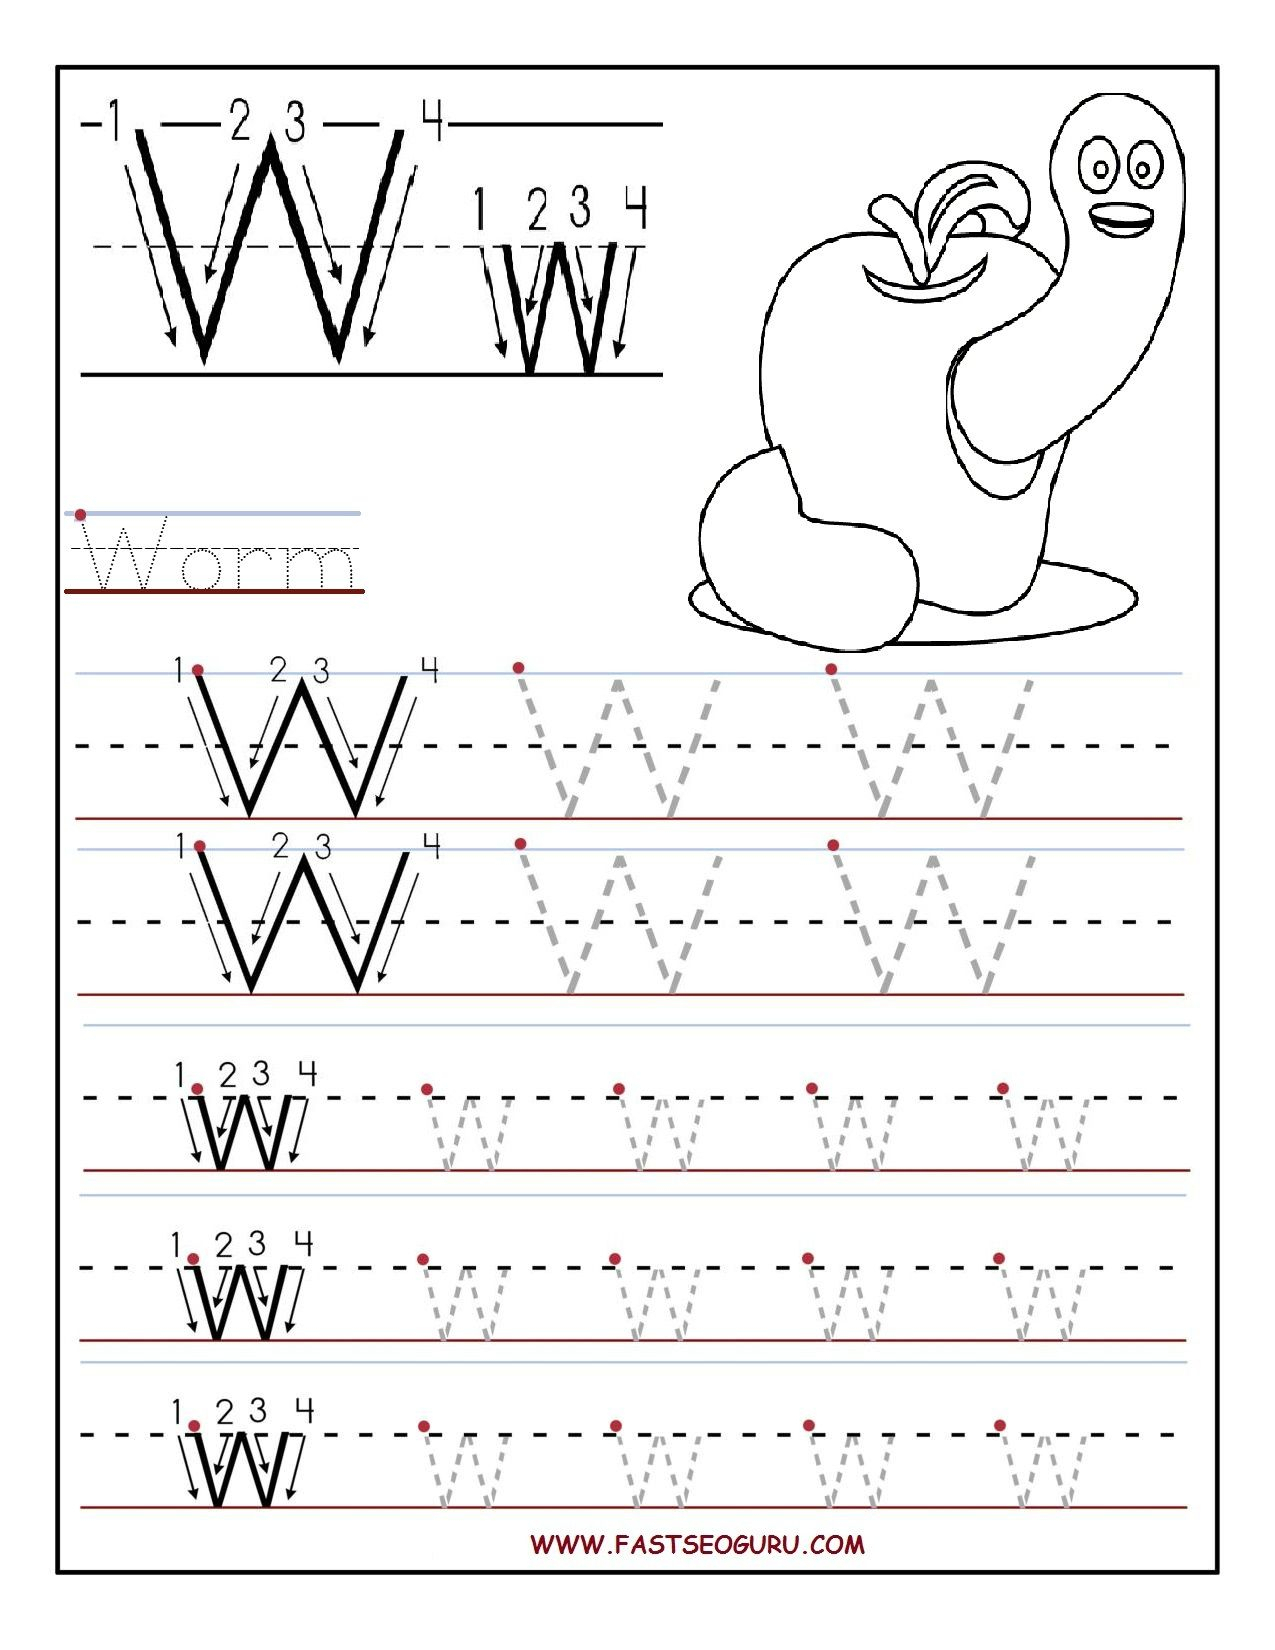 Printable Letter W Tracing Worksheets For Preschool within Letter W Worksheets For Preschool